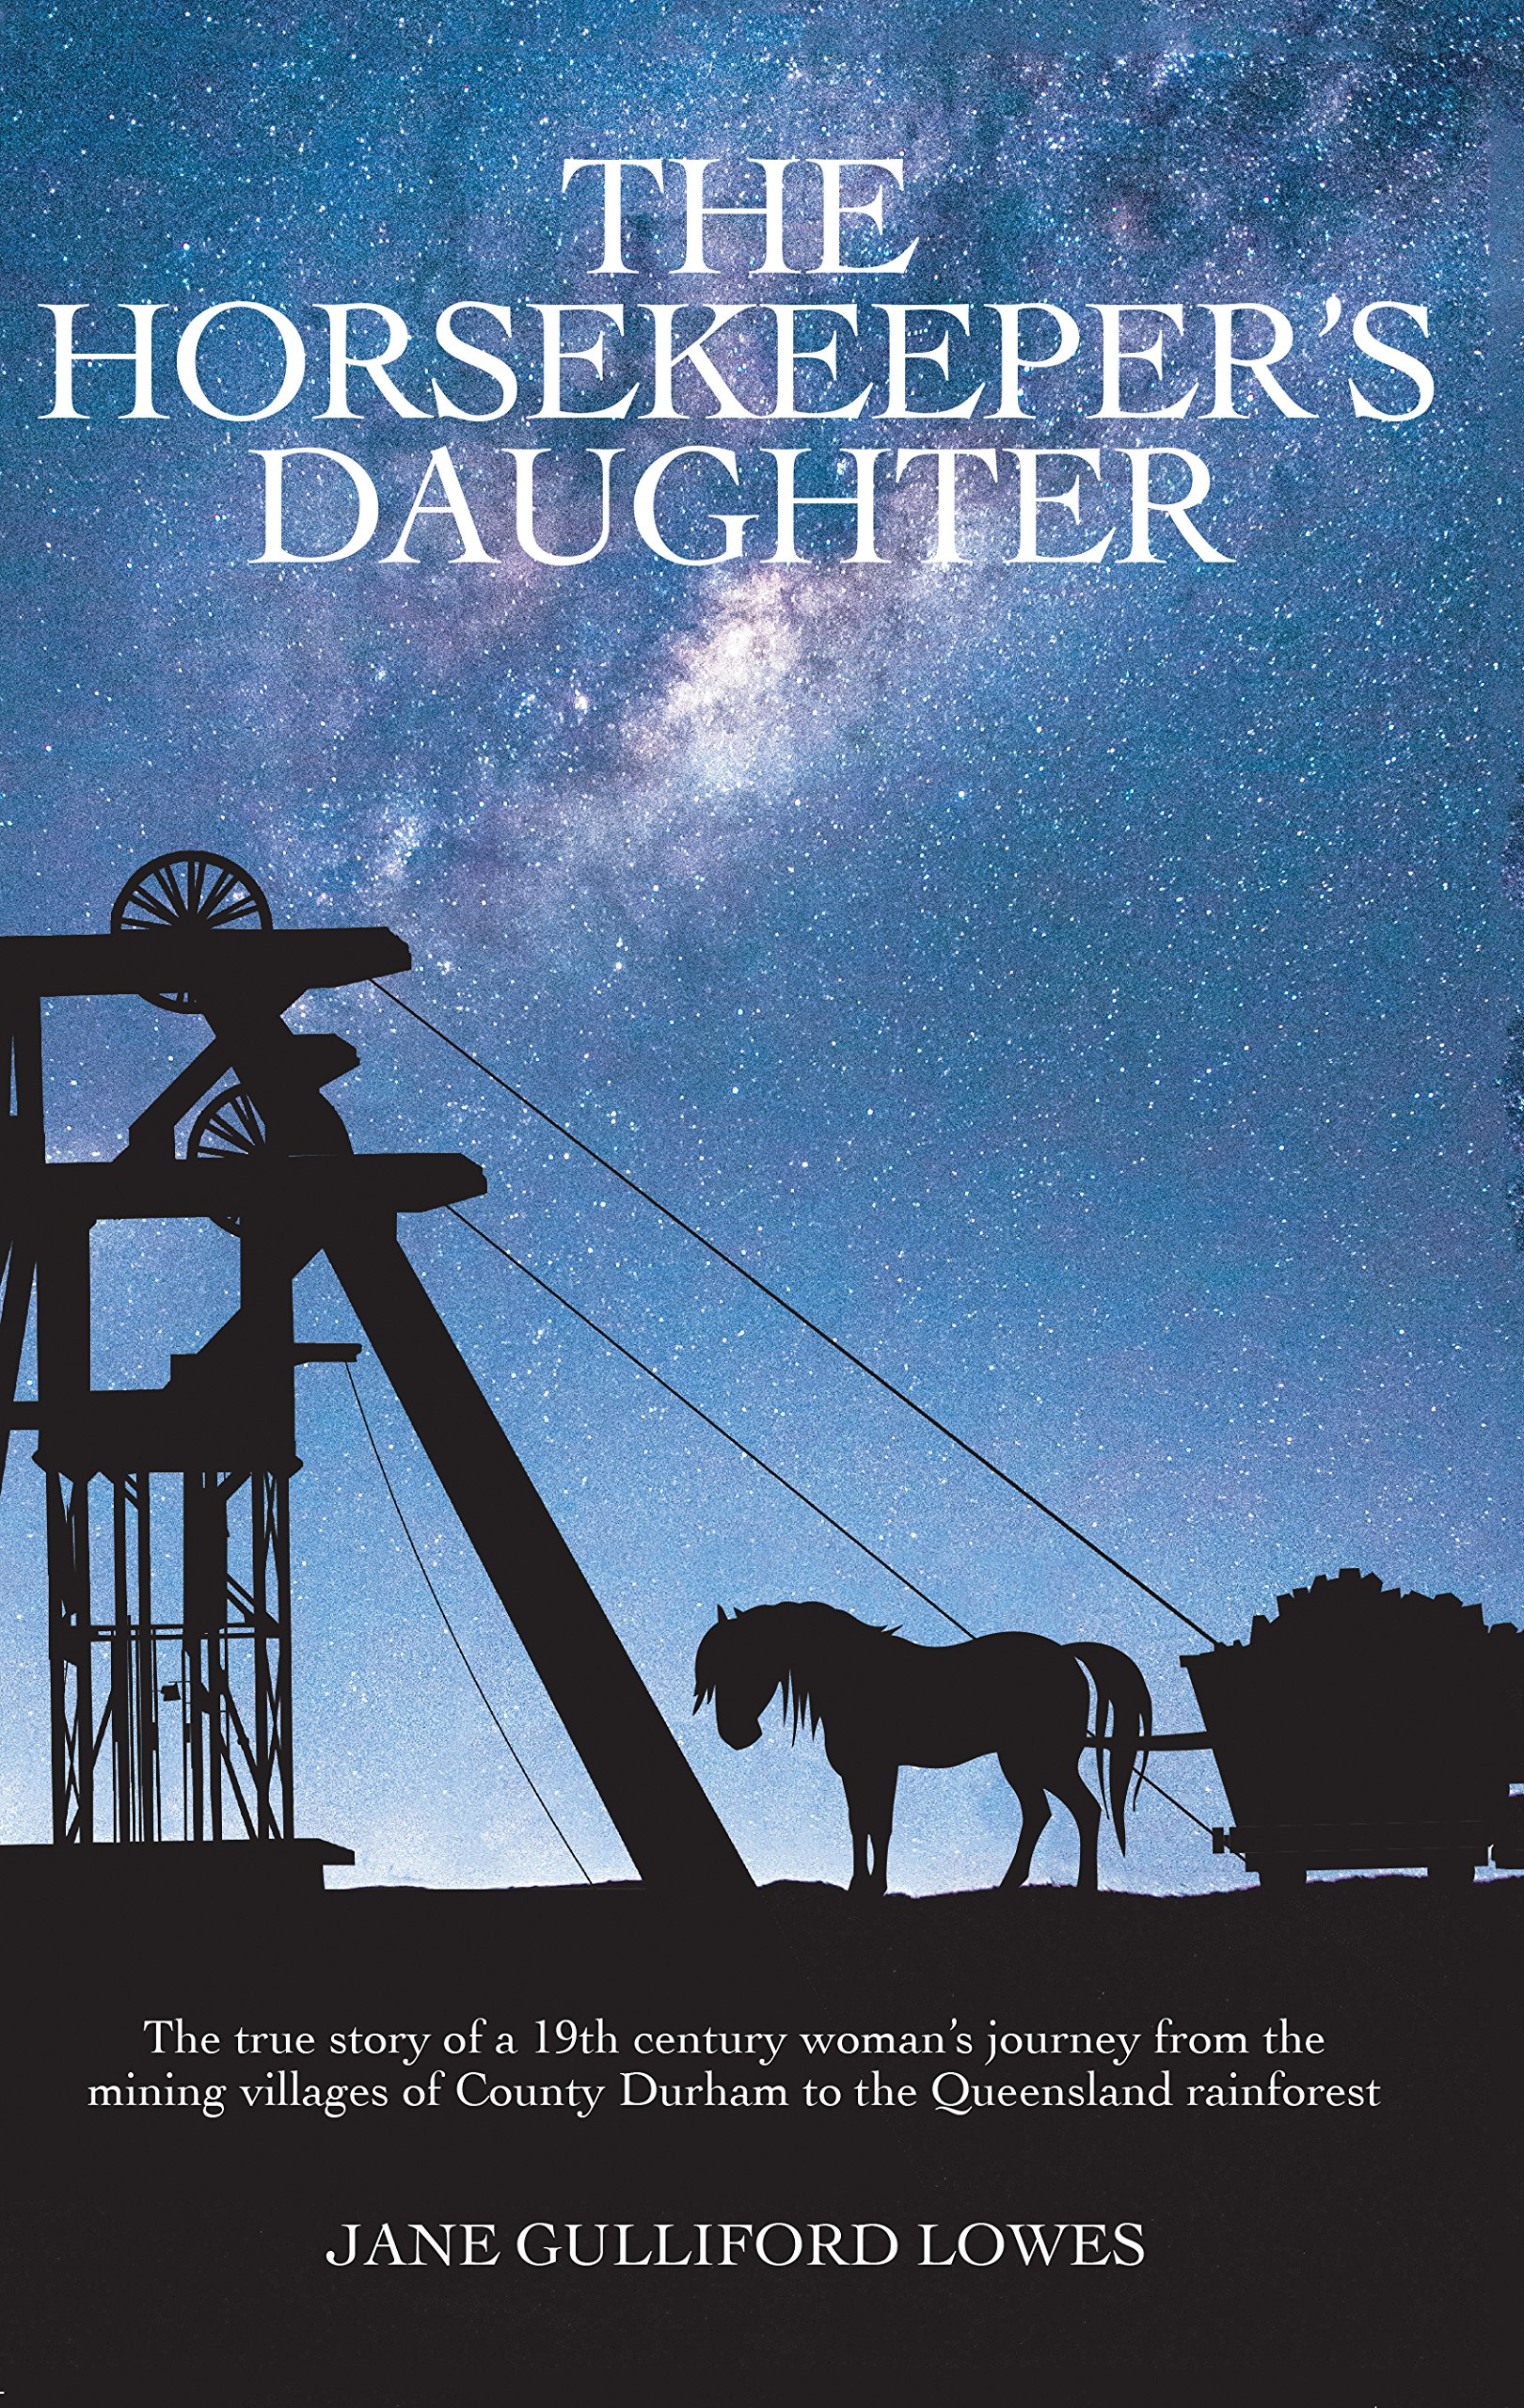 The Horsekeepers Daughter Jane Gulliford Lowes 4 Way Switch 9781788039741 Books